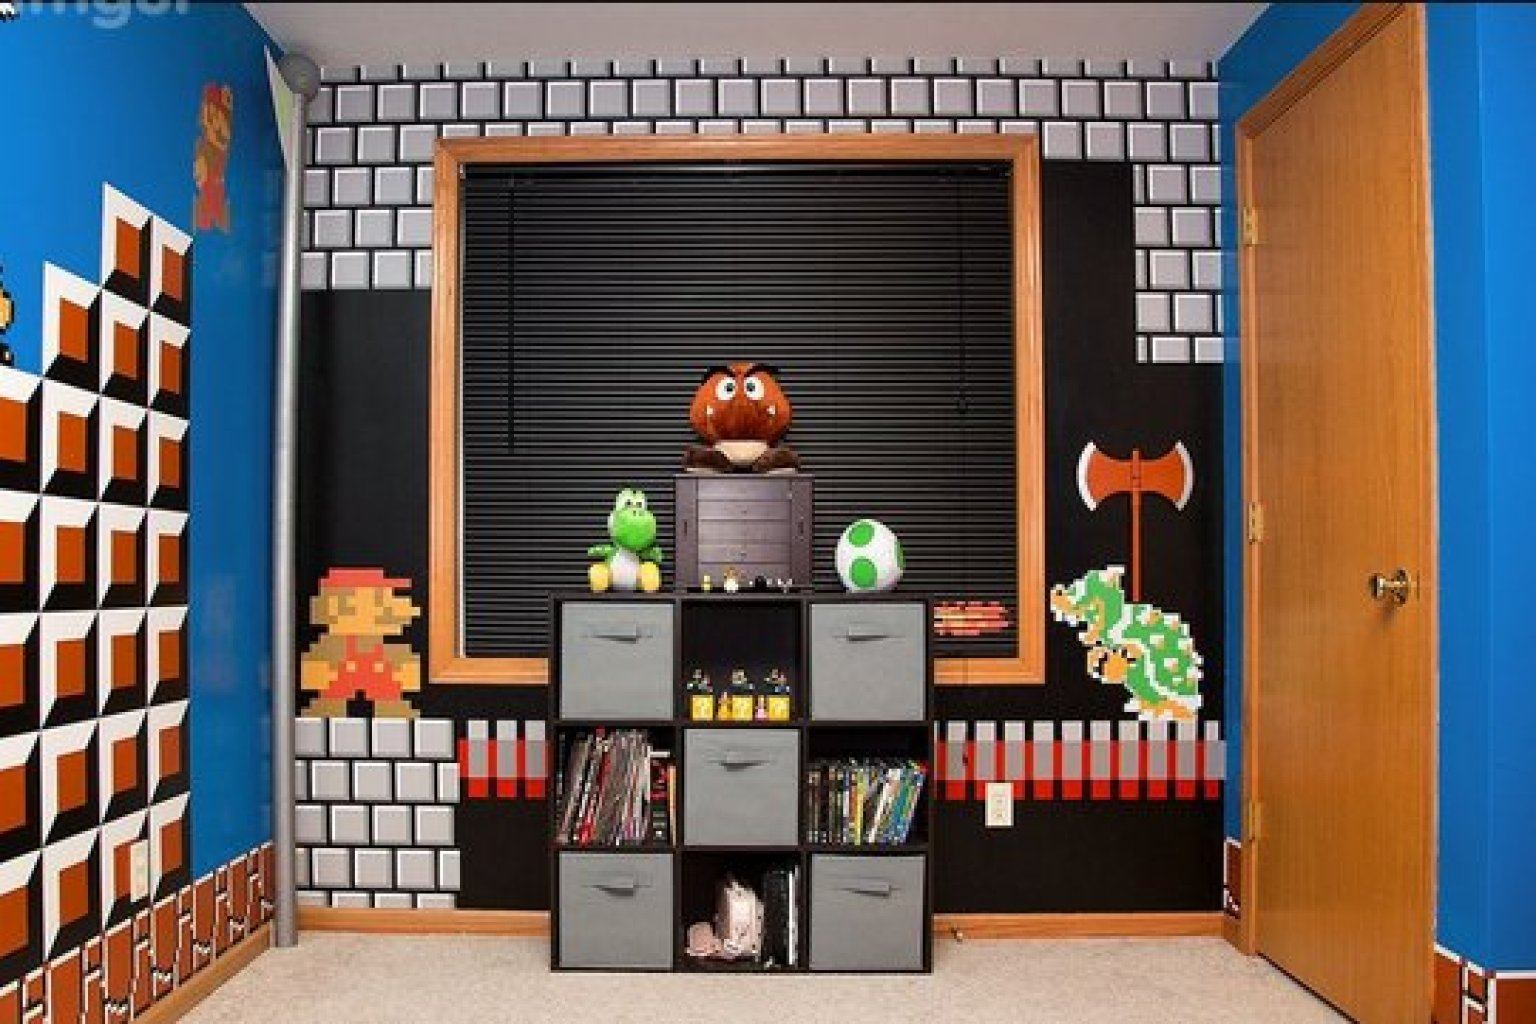 Super Mario Bros   Bedroom Is The Coolest Thing Ever  PHOTOS    HuffPost. Super Mario Bros   Bedroom Is The Coolest Thing Ever  PHOTOS